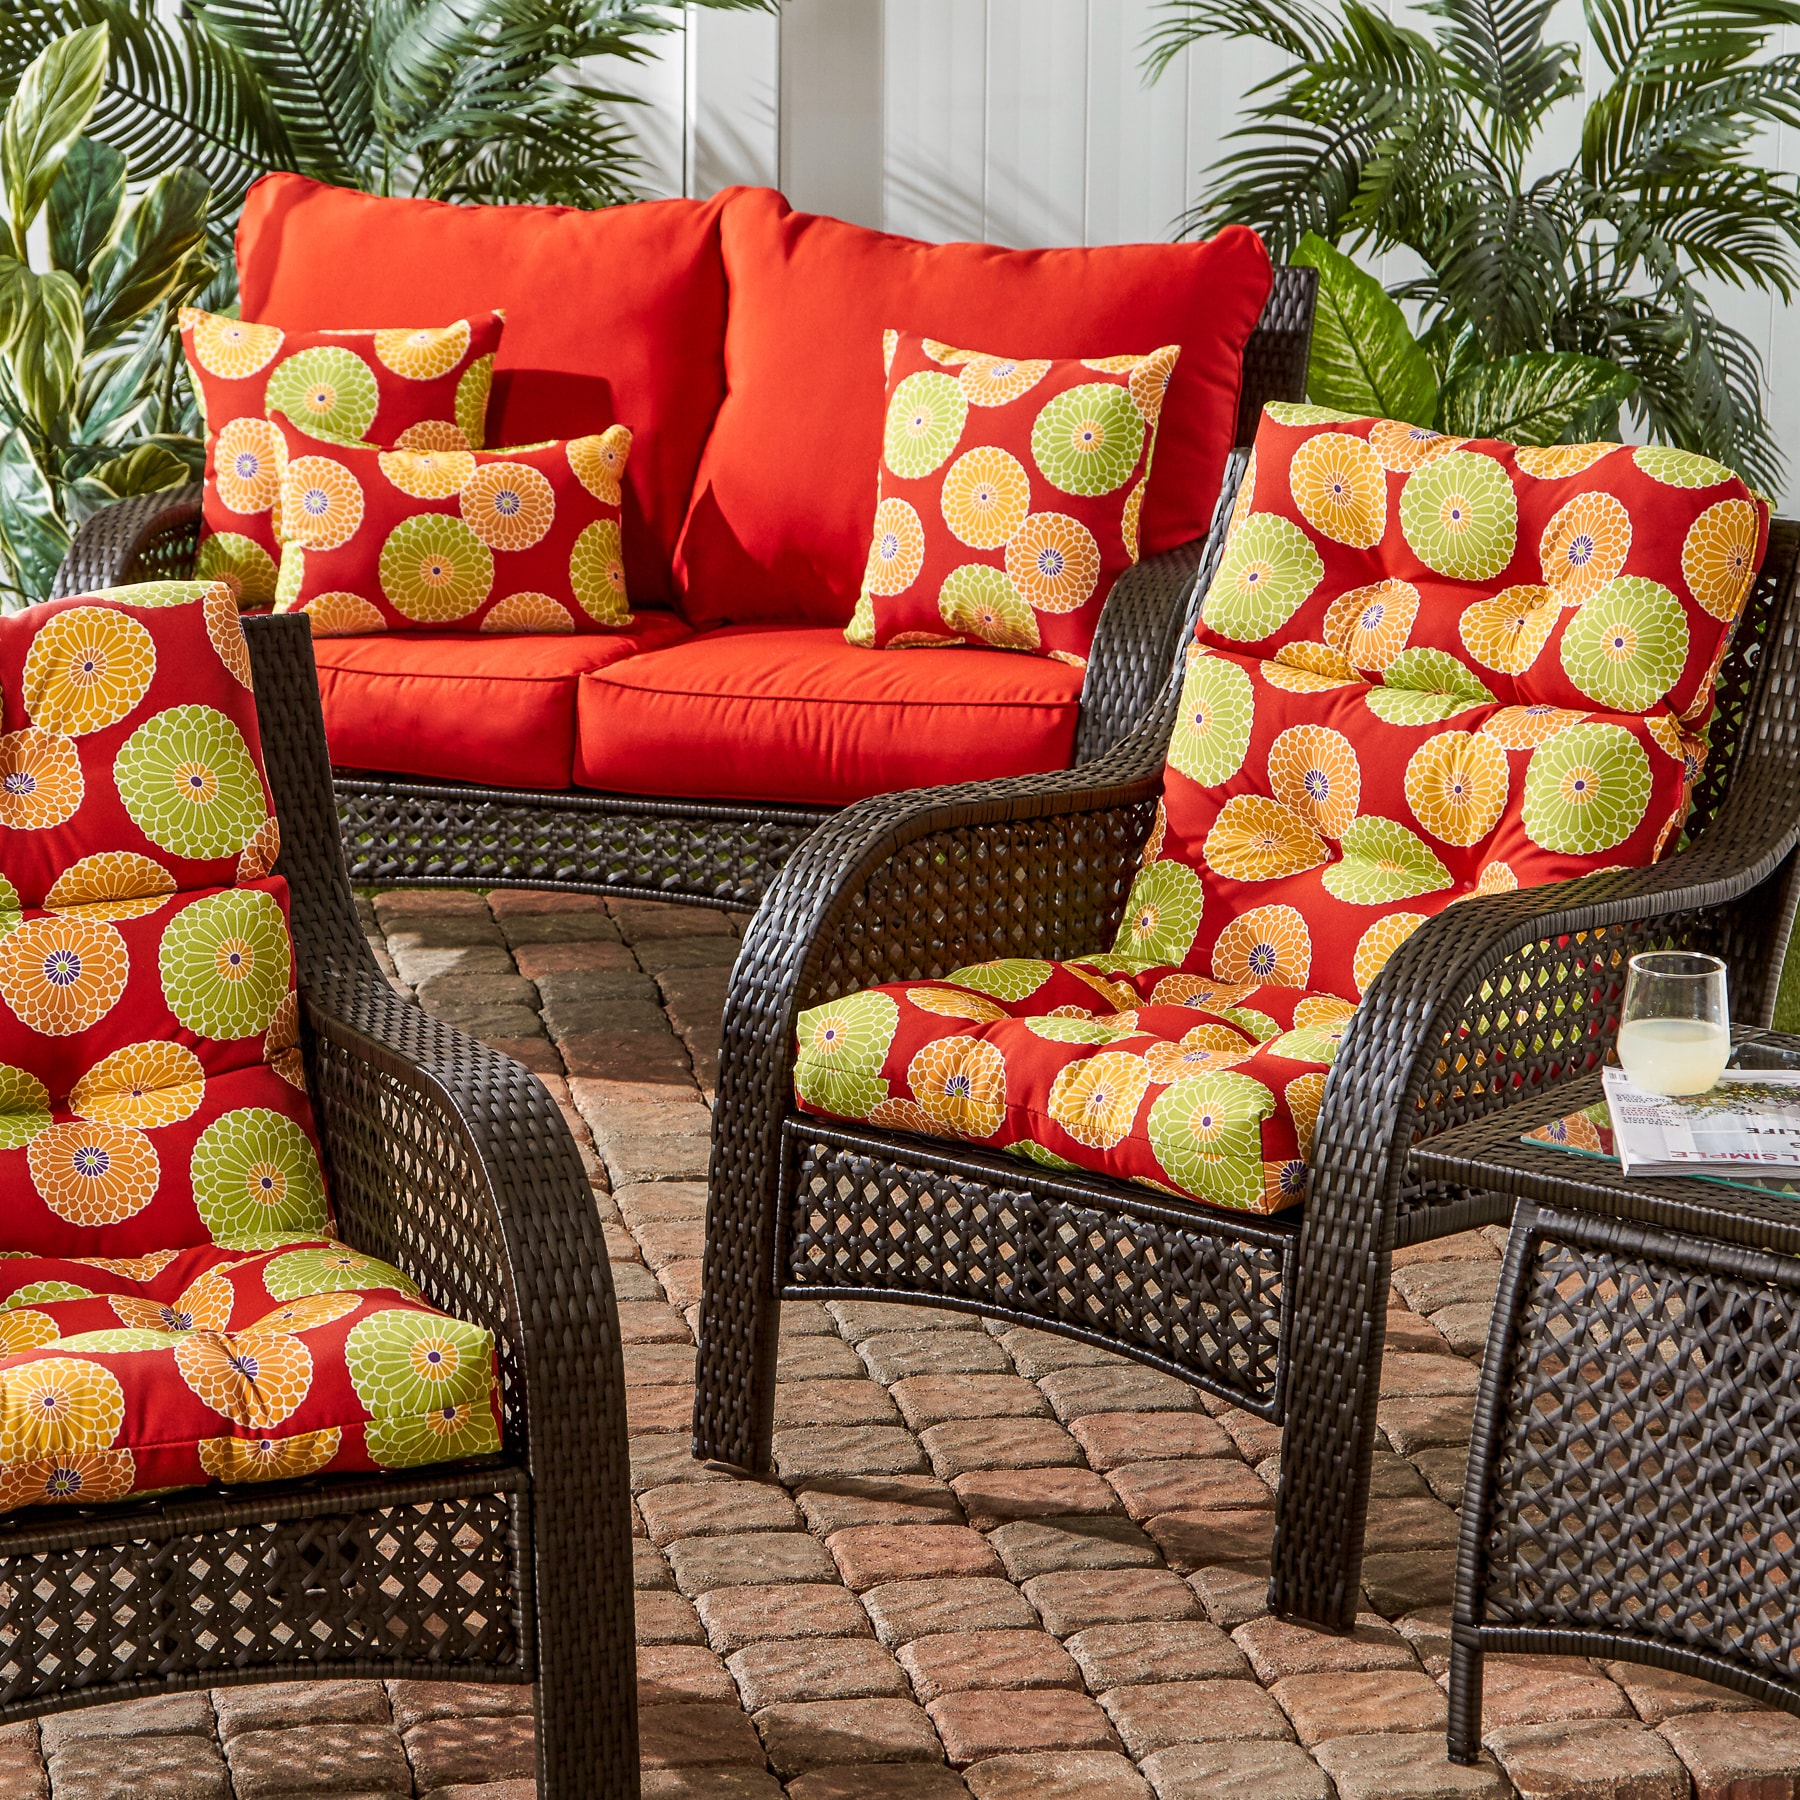 Beautiful Red Patio Chair Cushions